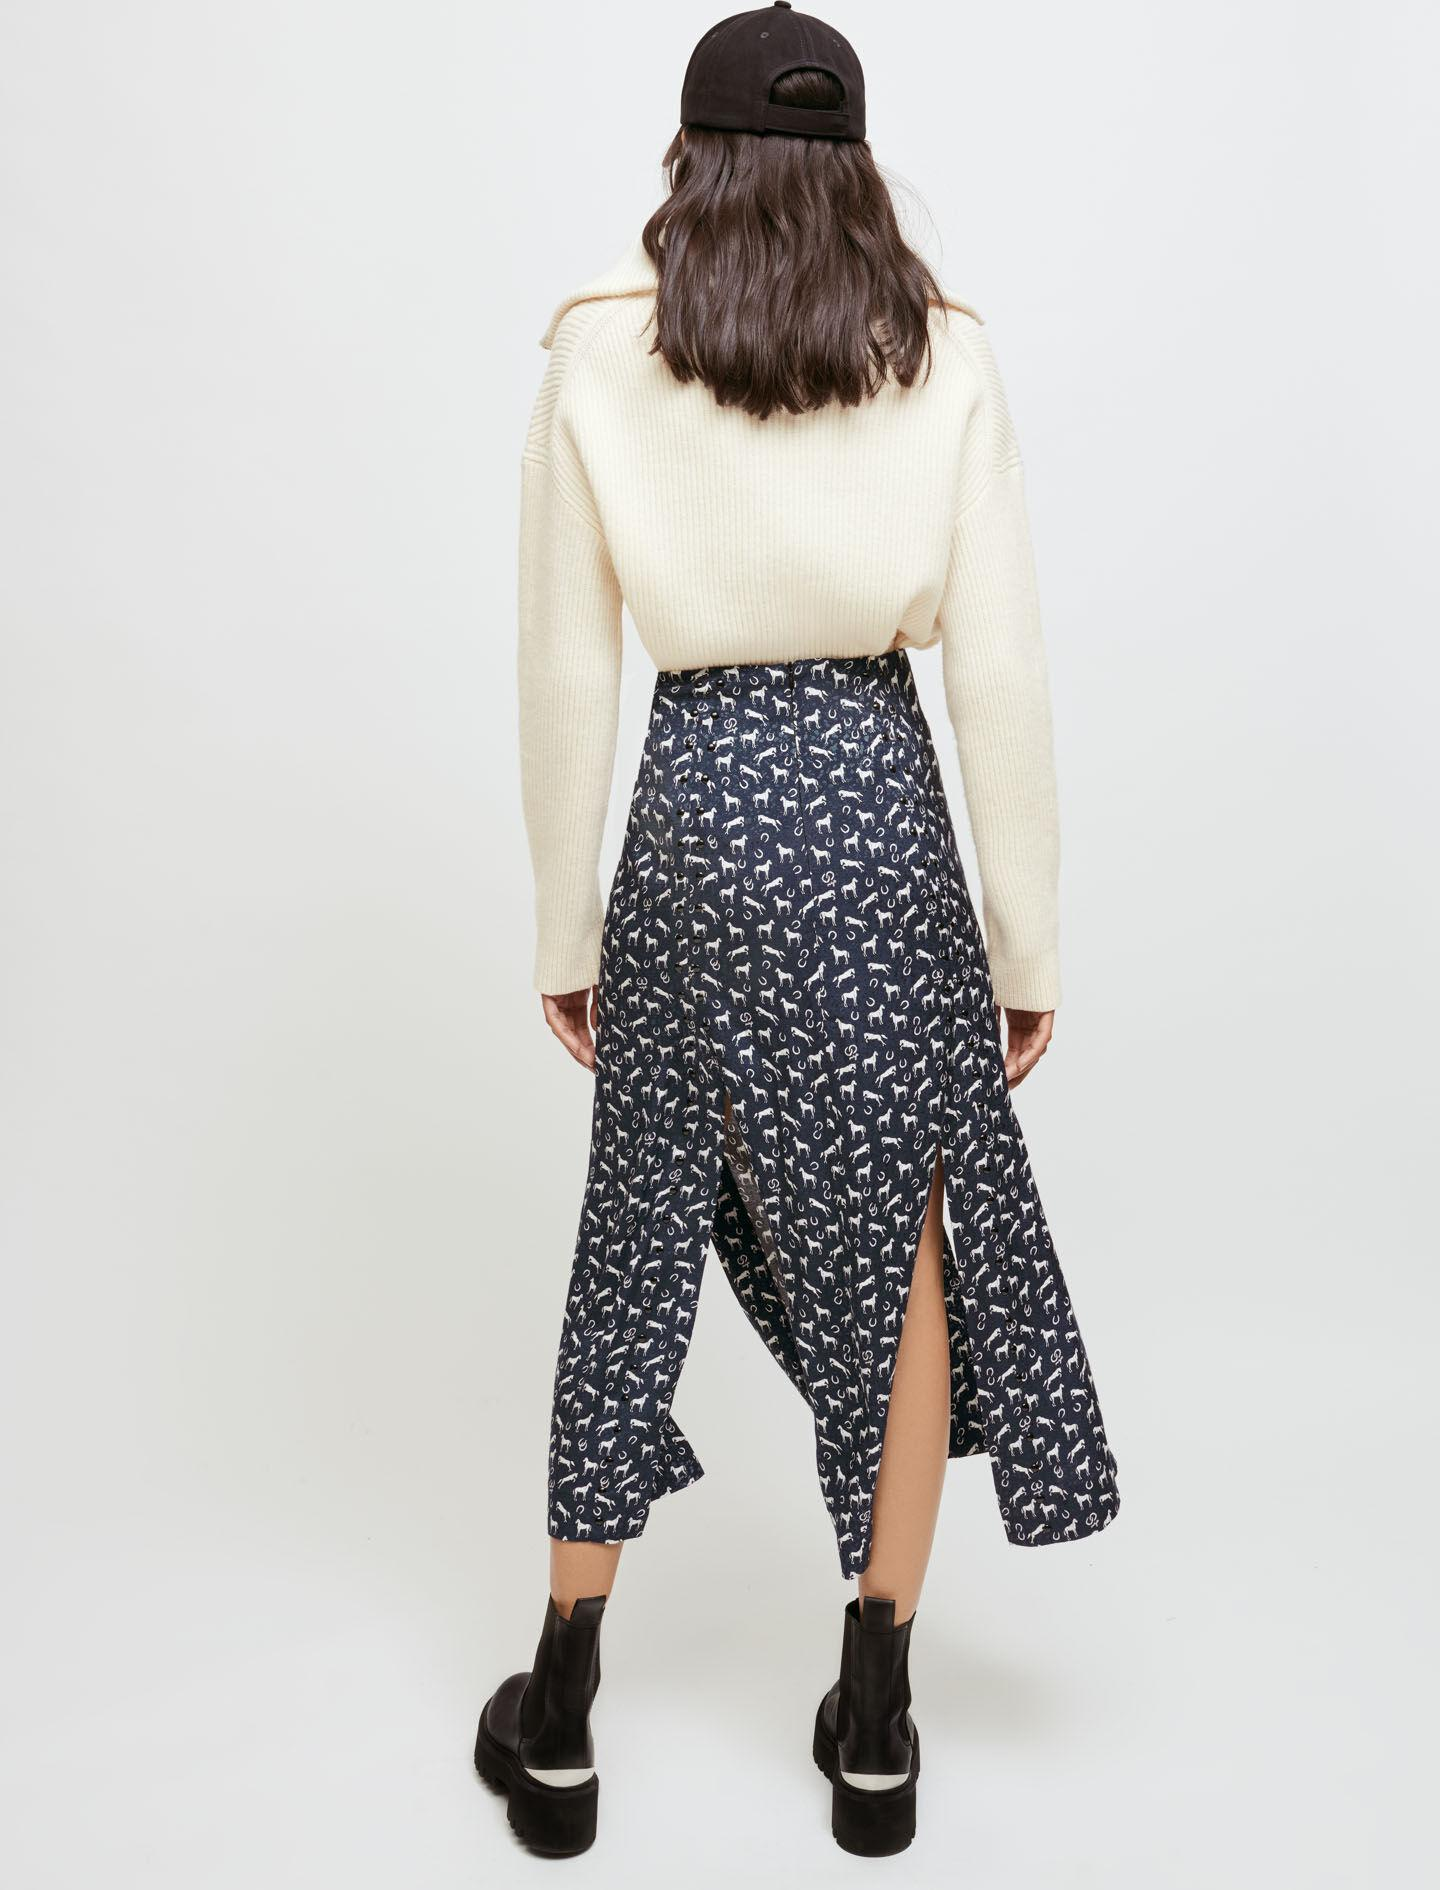 HORSE PRINT JACQUARD SKIRT WITH STUDS 1